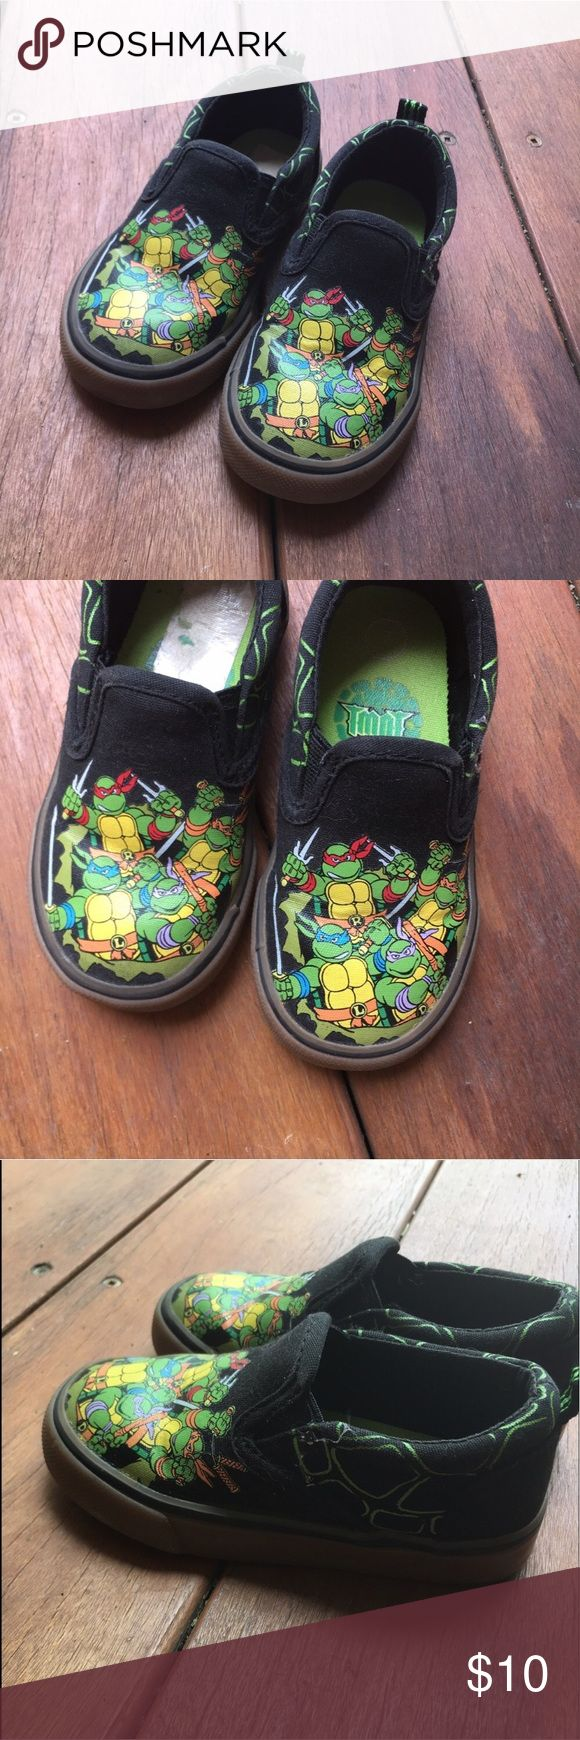 {TMNT} Slip On Skate Shoes Toddler 7 EUC! Only worn 2-3 times. Clean and ready for your little Shredder! Teenage Mutant Ninja Turtles Vans style slip on sneakers/loafers. Fit true to size. Comfy, cowabunga cool! Offers warmly welcomed. Disney Shoes Sneakers